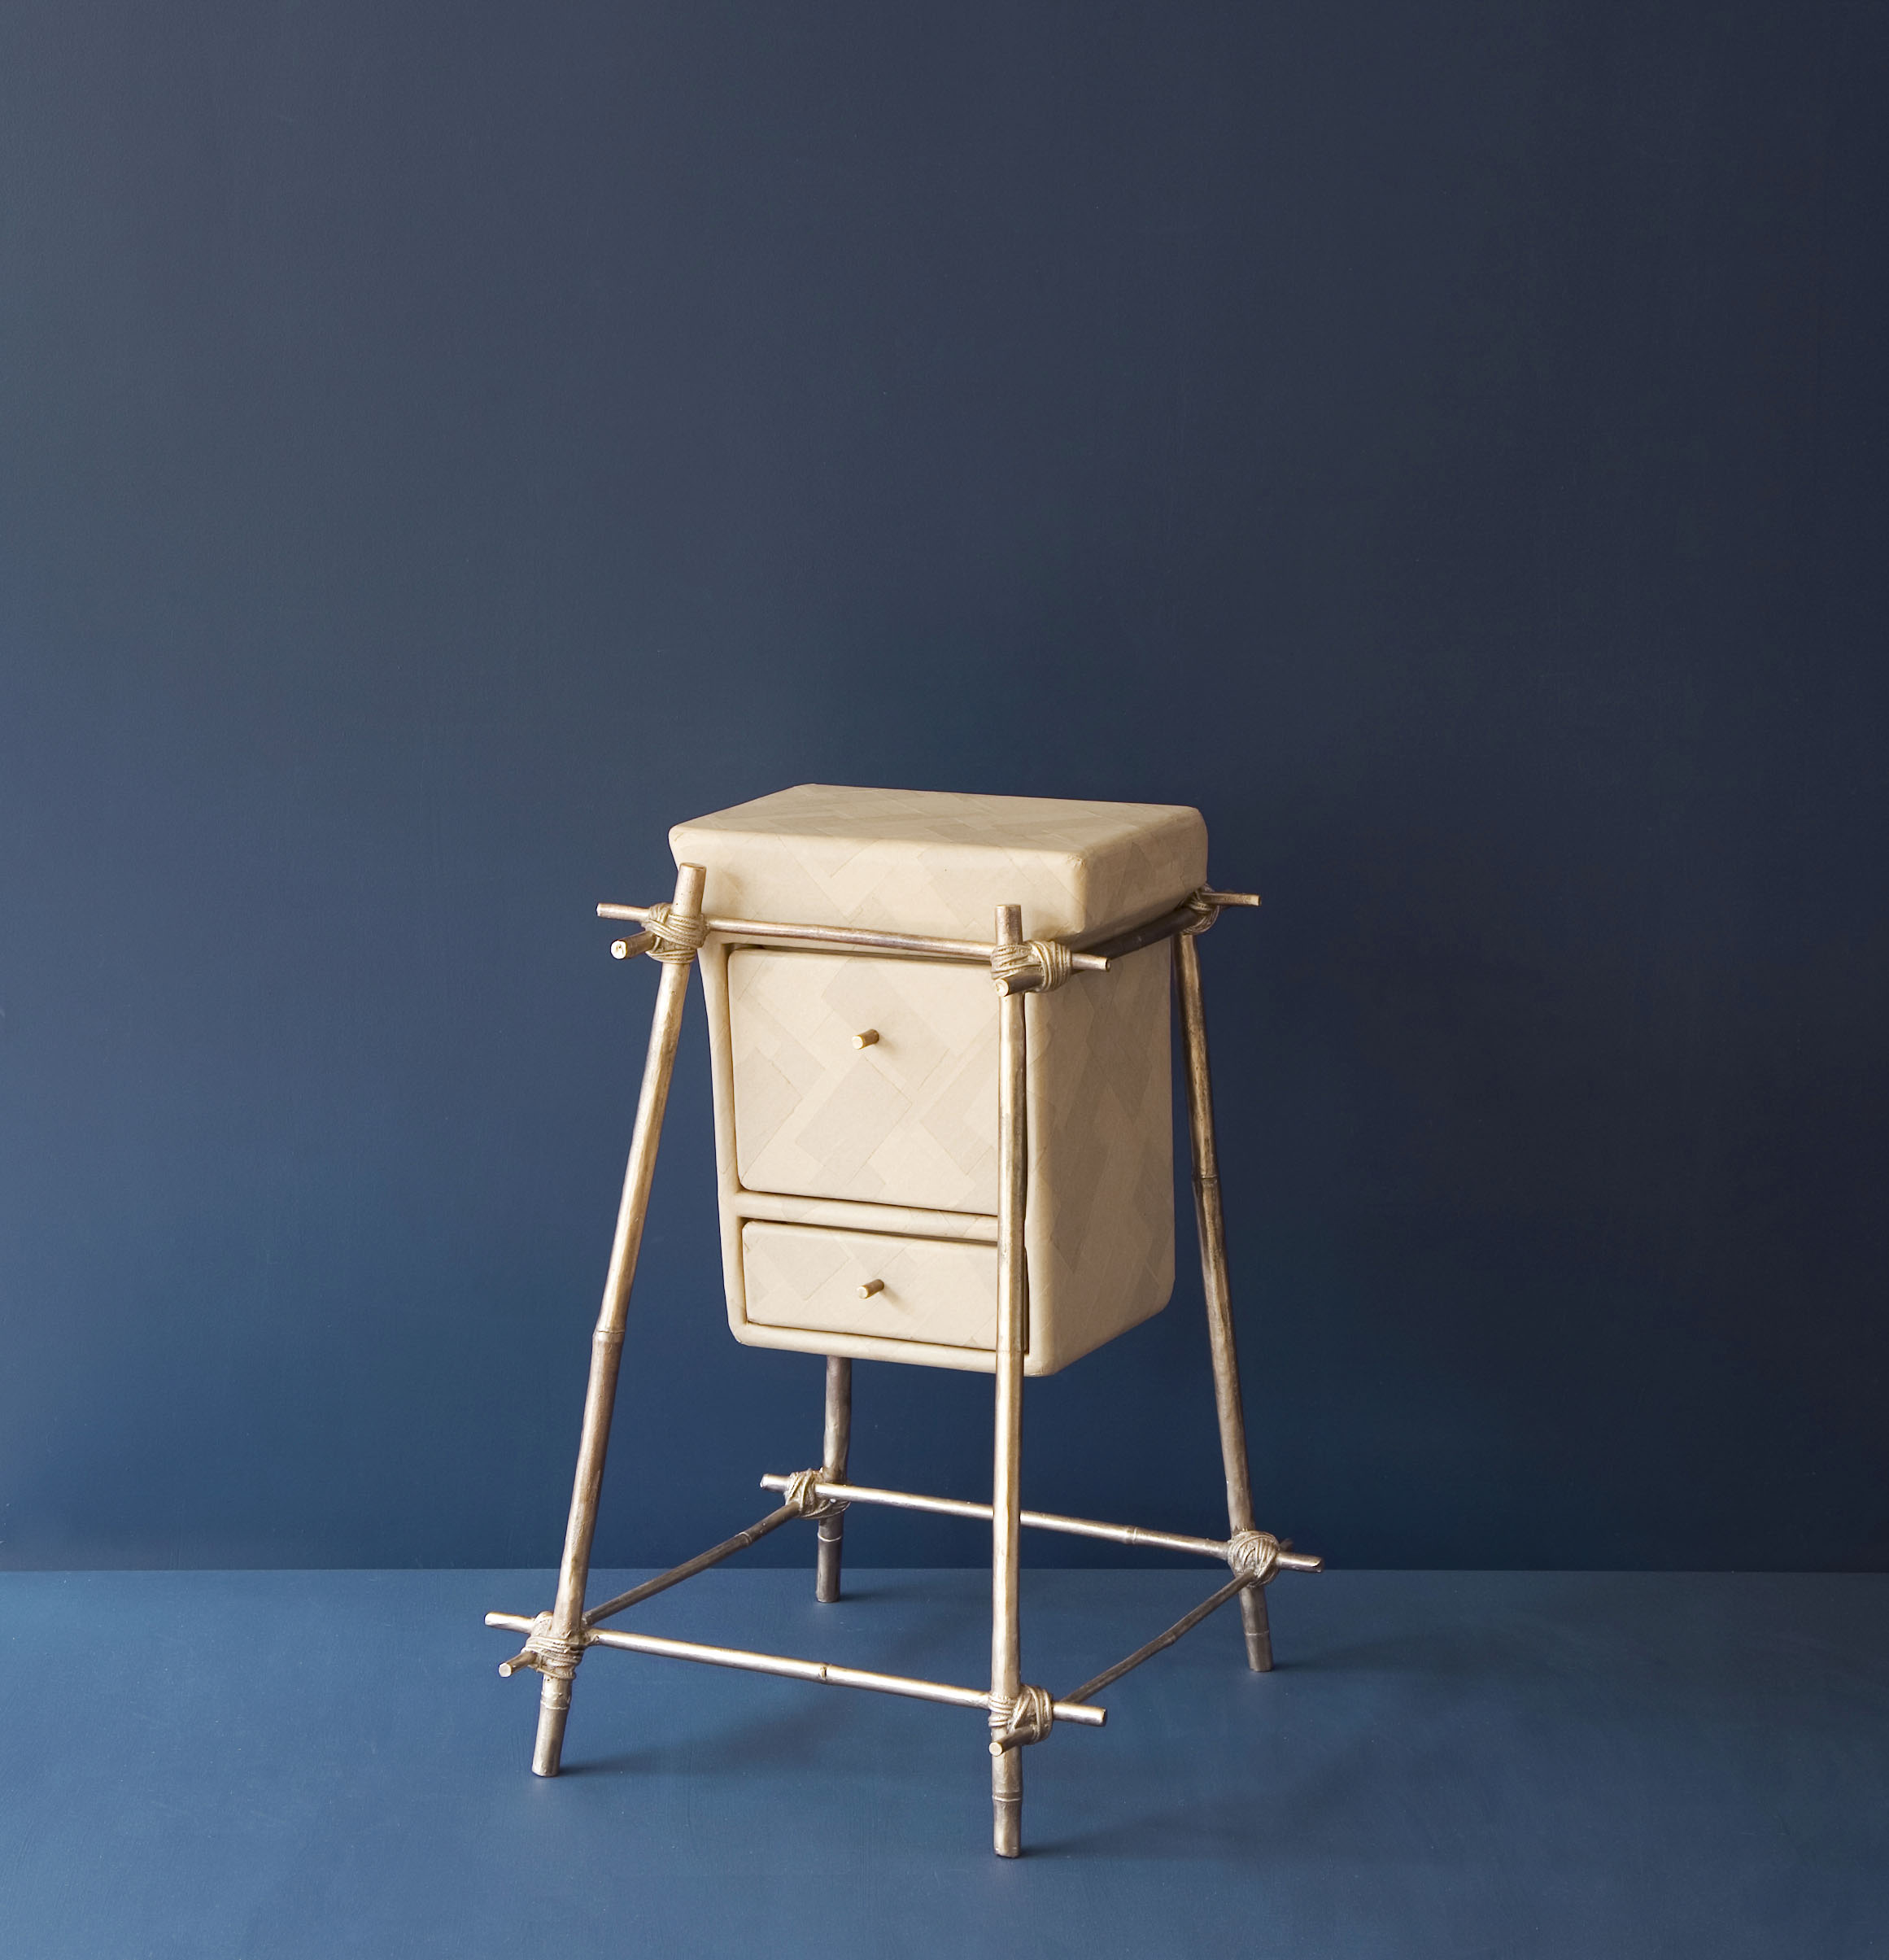 Laissez-faire furniture piece with bronze cast bamboo frame and gum paper drawers